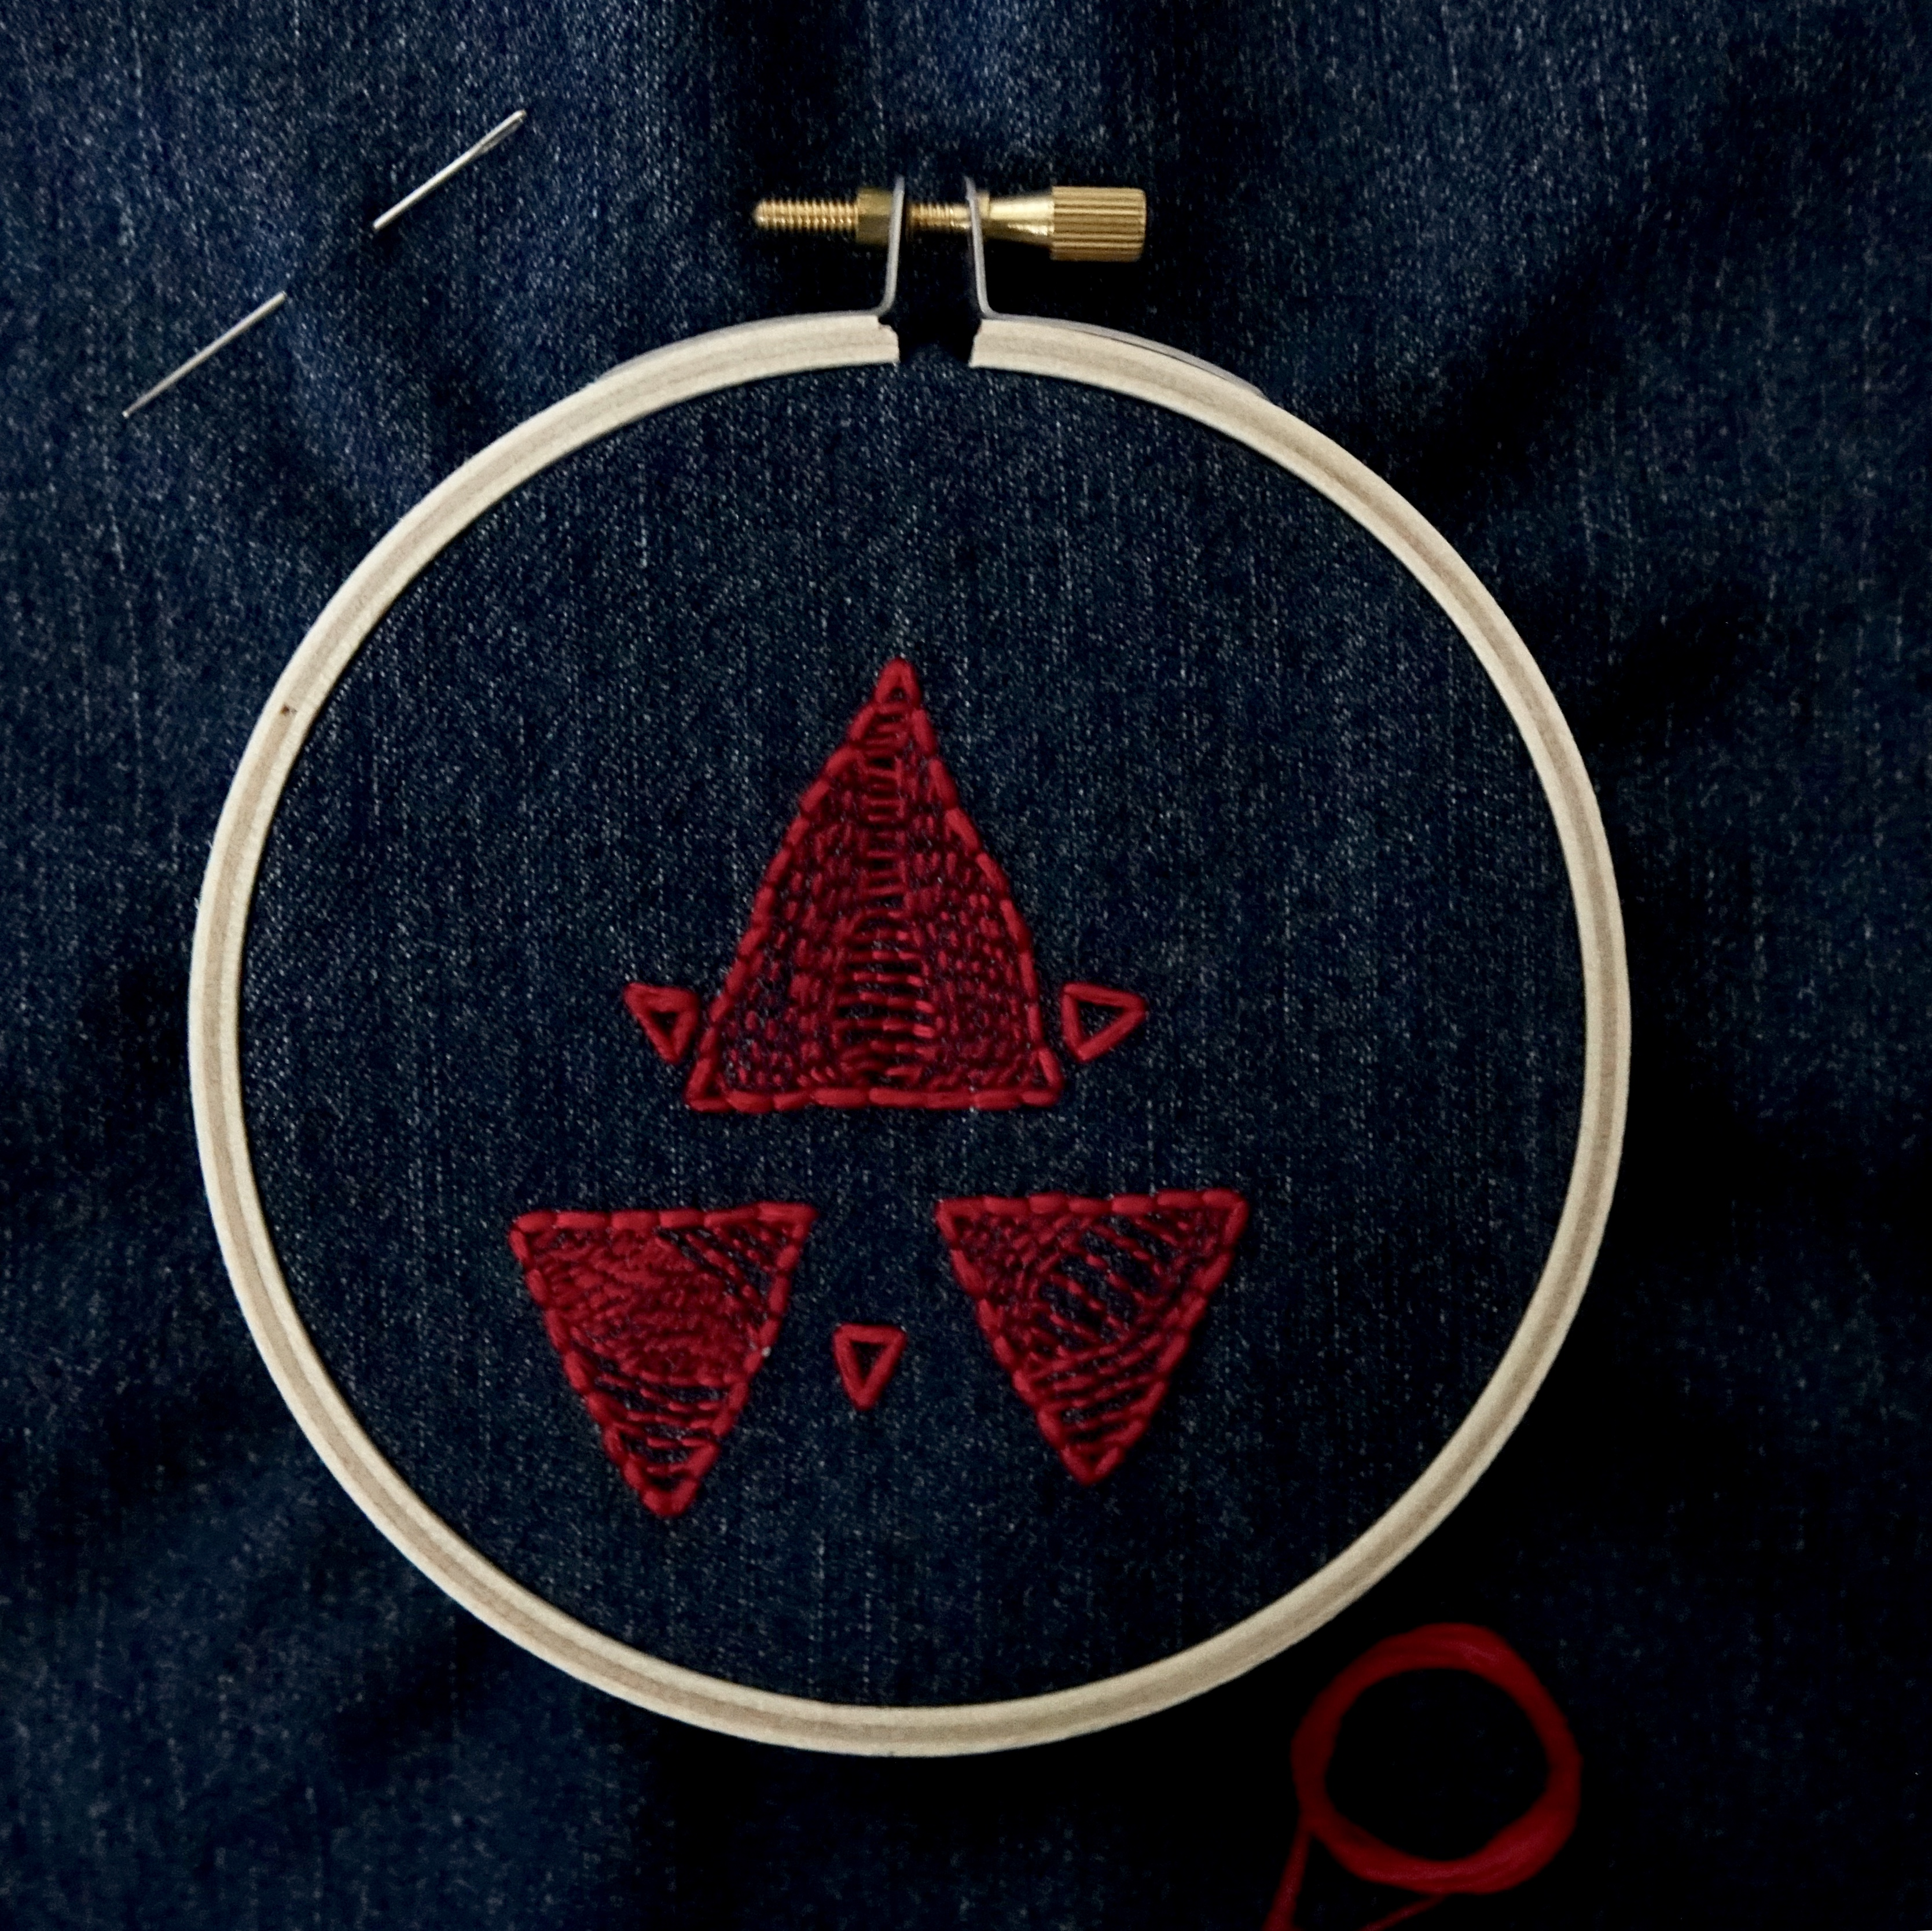 An embroidery hoop set with denim, embroidered with red triangles, shot from a mid-low angle.